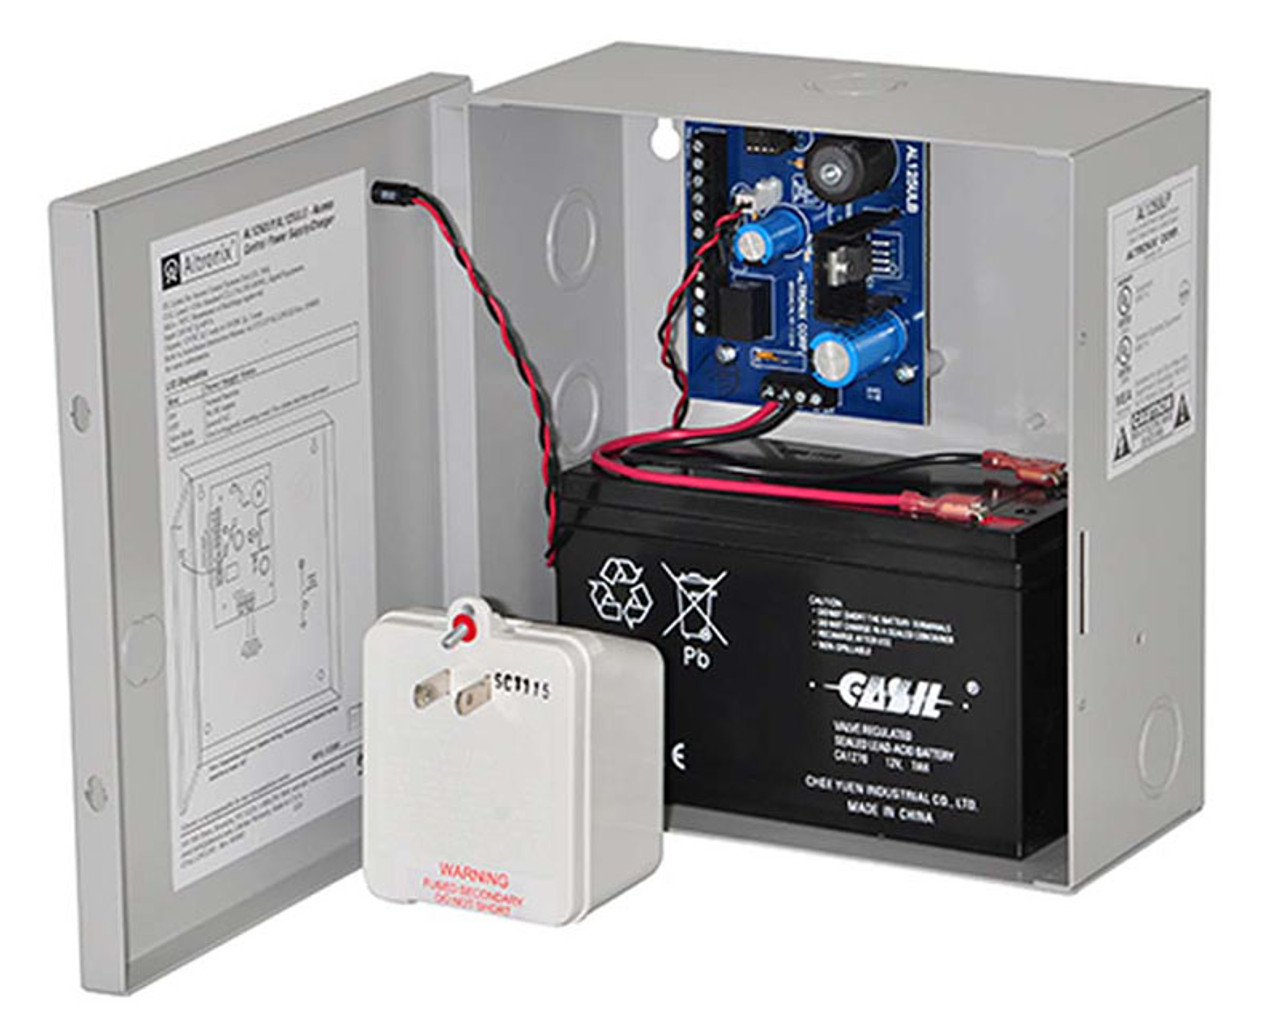 Altronix AL125ULP Power Supply Power Supply/Charger 24VAC 40VA from UL  Listed Class 2 Transformer 2 PTC Outputs